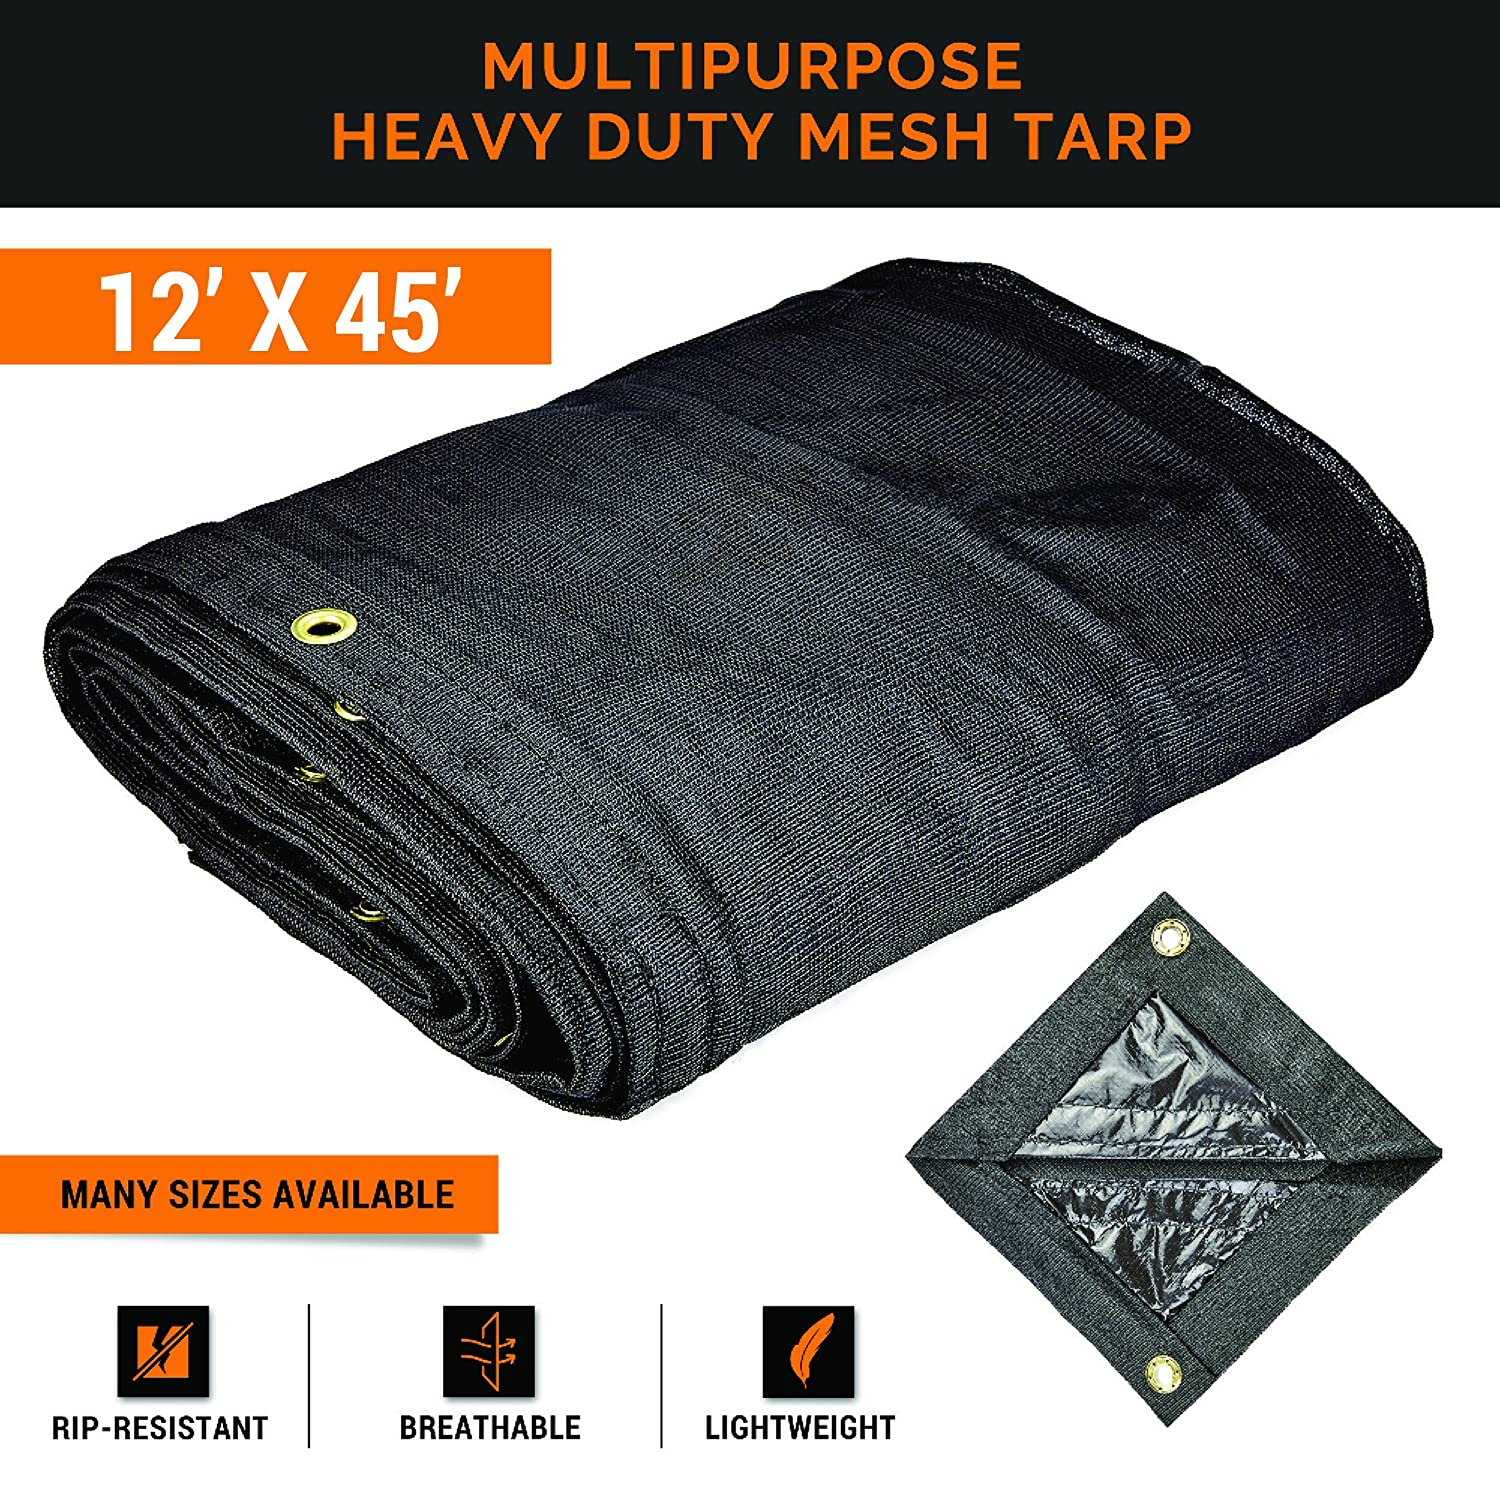 Dump Trucks Tear Resistant Fences Canopies 10/' x 18/' Multipurpose Black Protective Cover with Air Flow Shade Use for Tie Downs Xpose Safety Heavy Duty Mesh Tarp